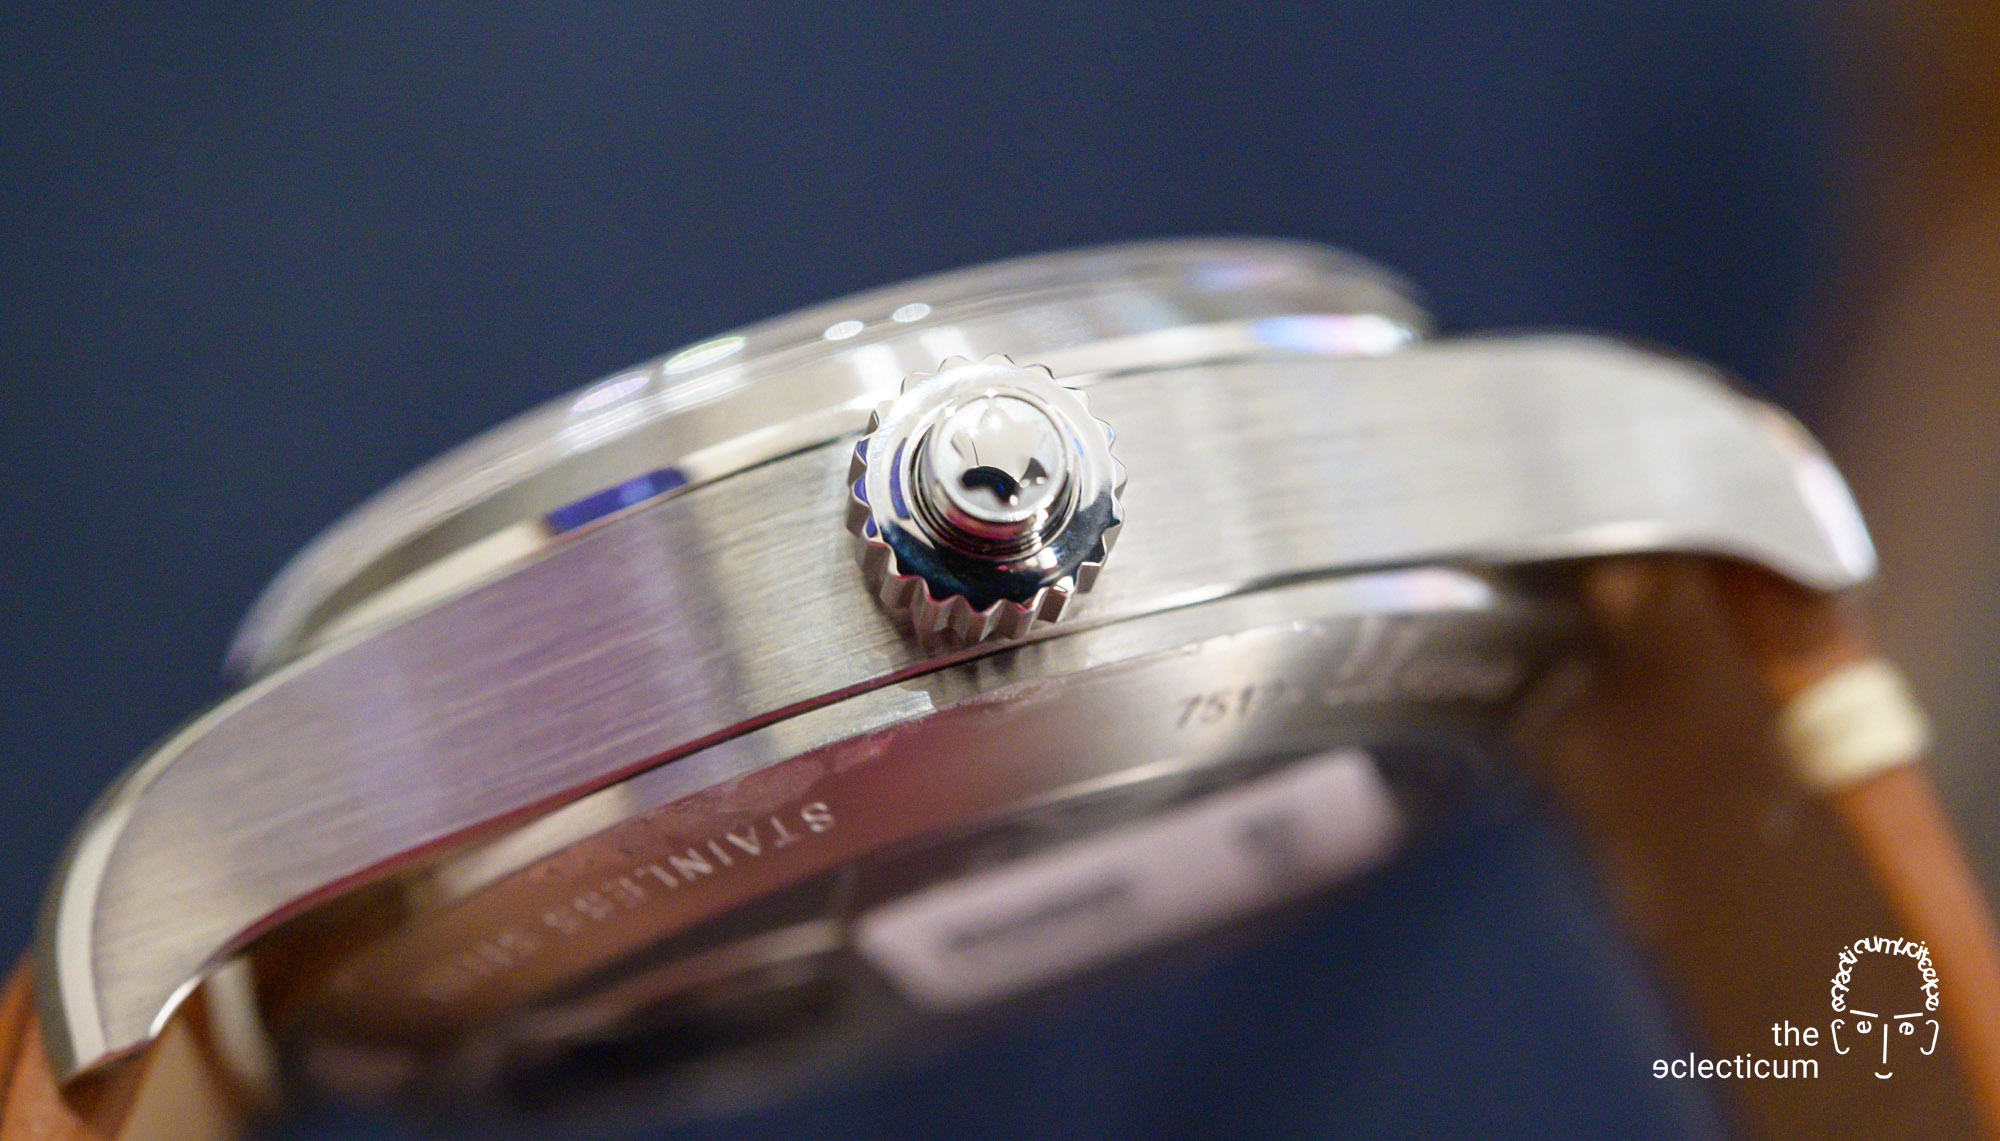 Montblanc 1858 Monopusher Chronograph automatic coaxial crown